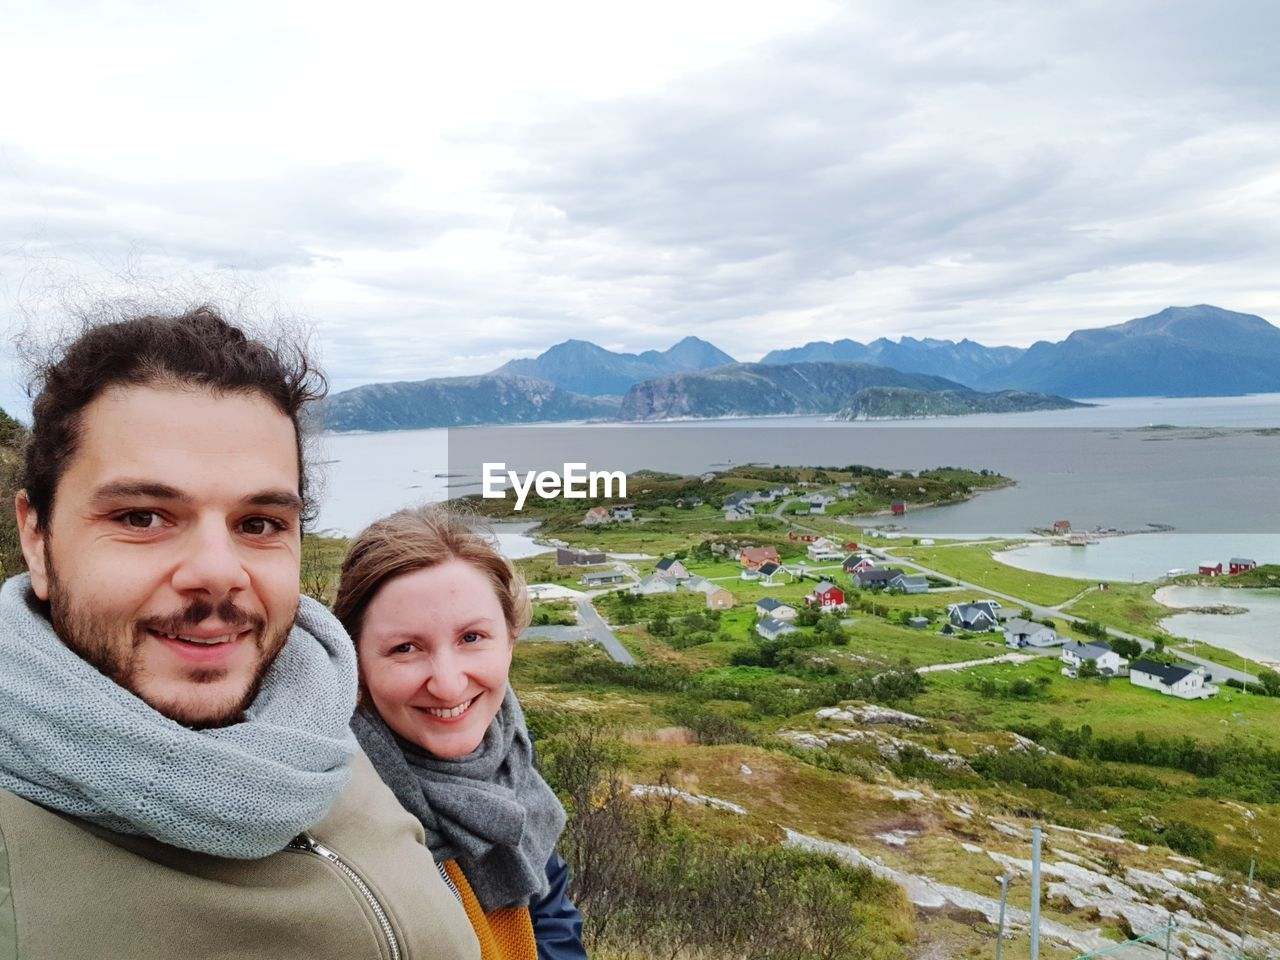 portrait, mountain, cloud - sky, looking at camera, smiling, happiness, emotion, sky, water, leisure activity, two people, real people, togetherness, beauty in nature, scenics - nature, nature, lifestyles, headshot, men, males, mountain range, positive emotion, outdoors, couple - relationship